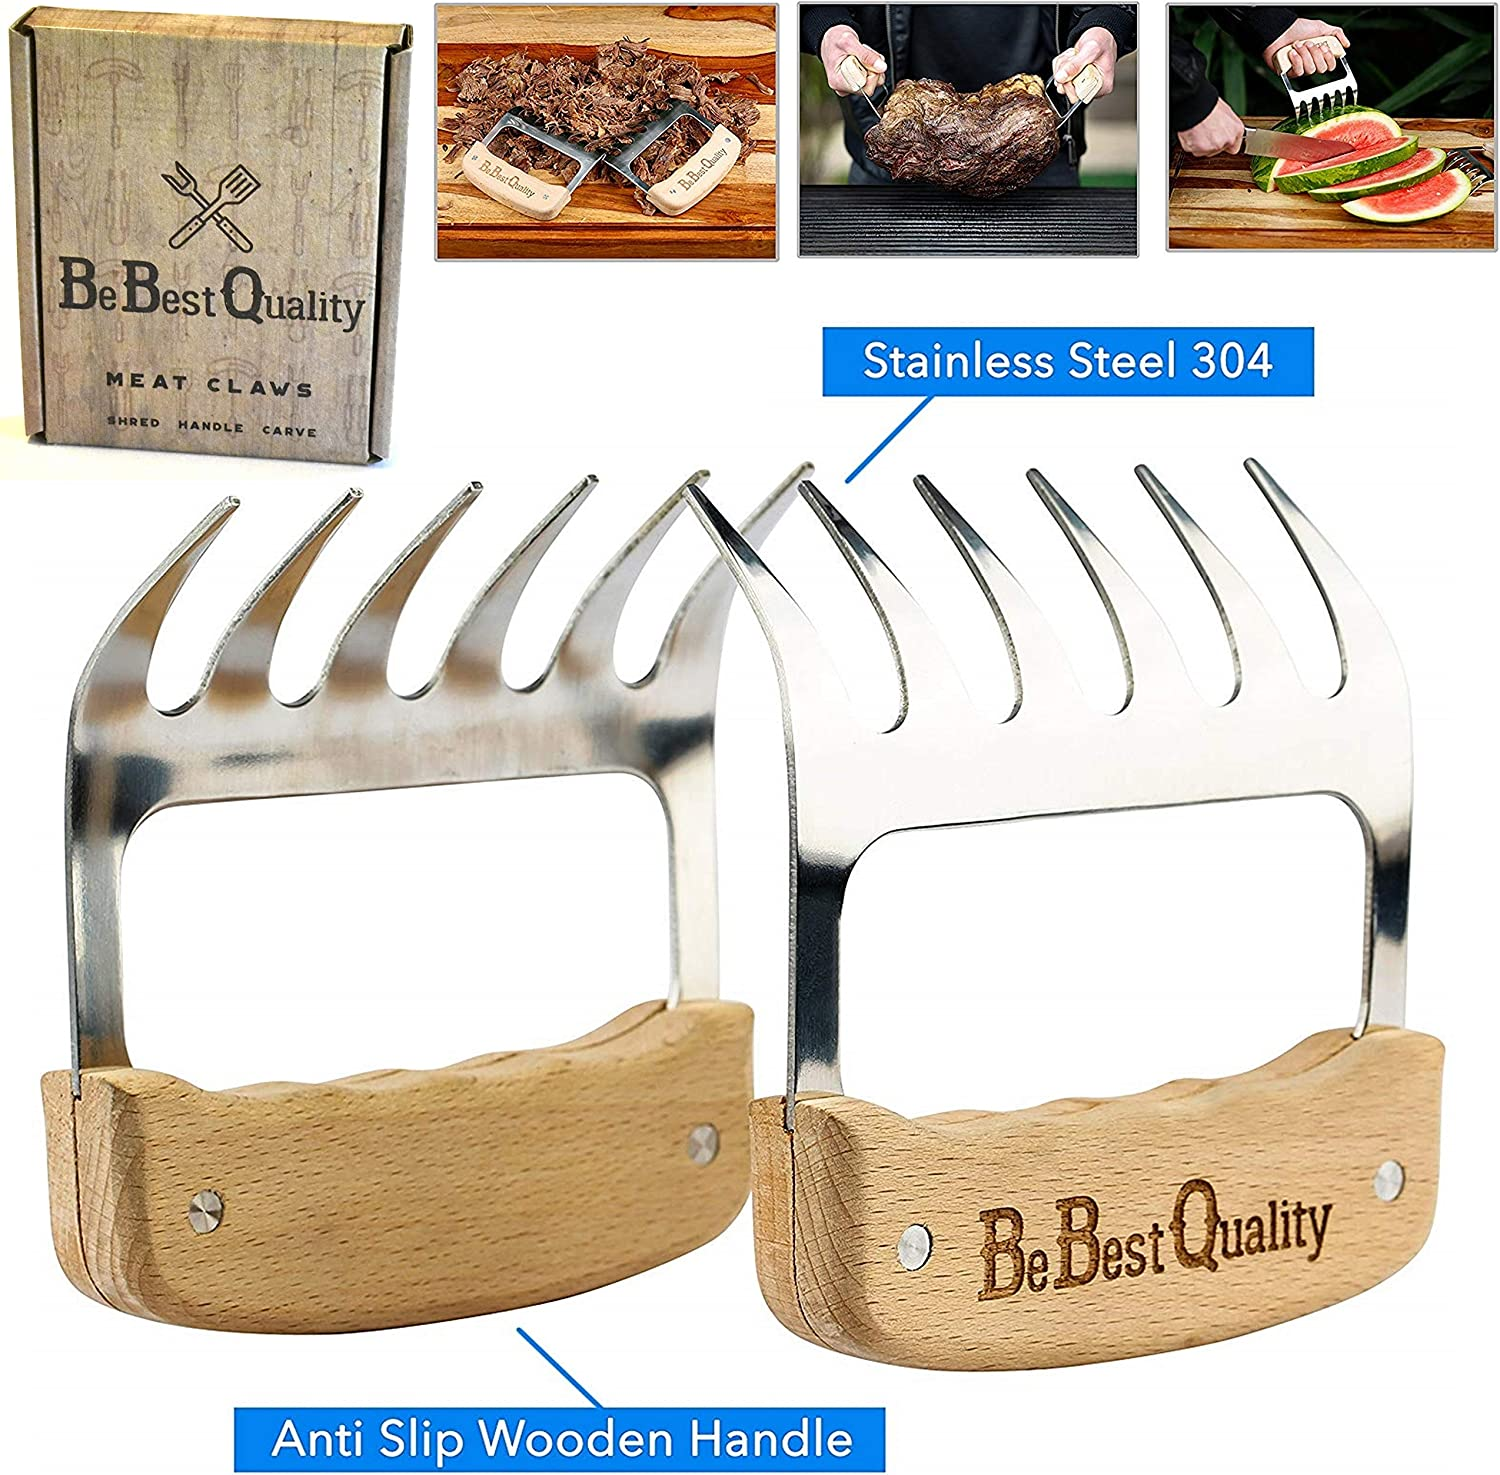 MCBInfinity Meat Claws Stainless Steel Shredders – Pull, Handle, Carve BBQ Pulled Pork, Brisket, Turkey – BPA-Free Metal Forks and Wooden No-Slip Grips for Grill, Smoker, Crockpot, 2 Bear Claws 912Bhhf26ouL